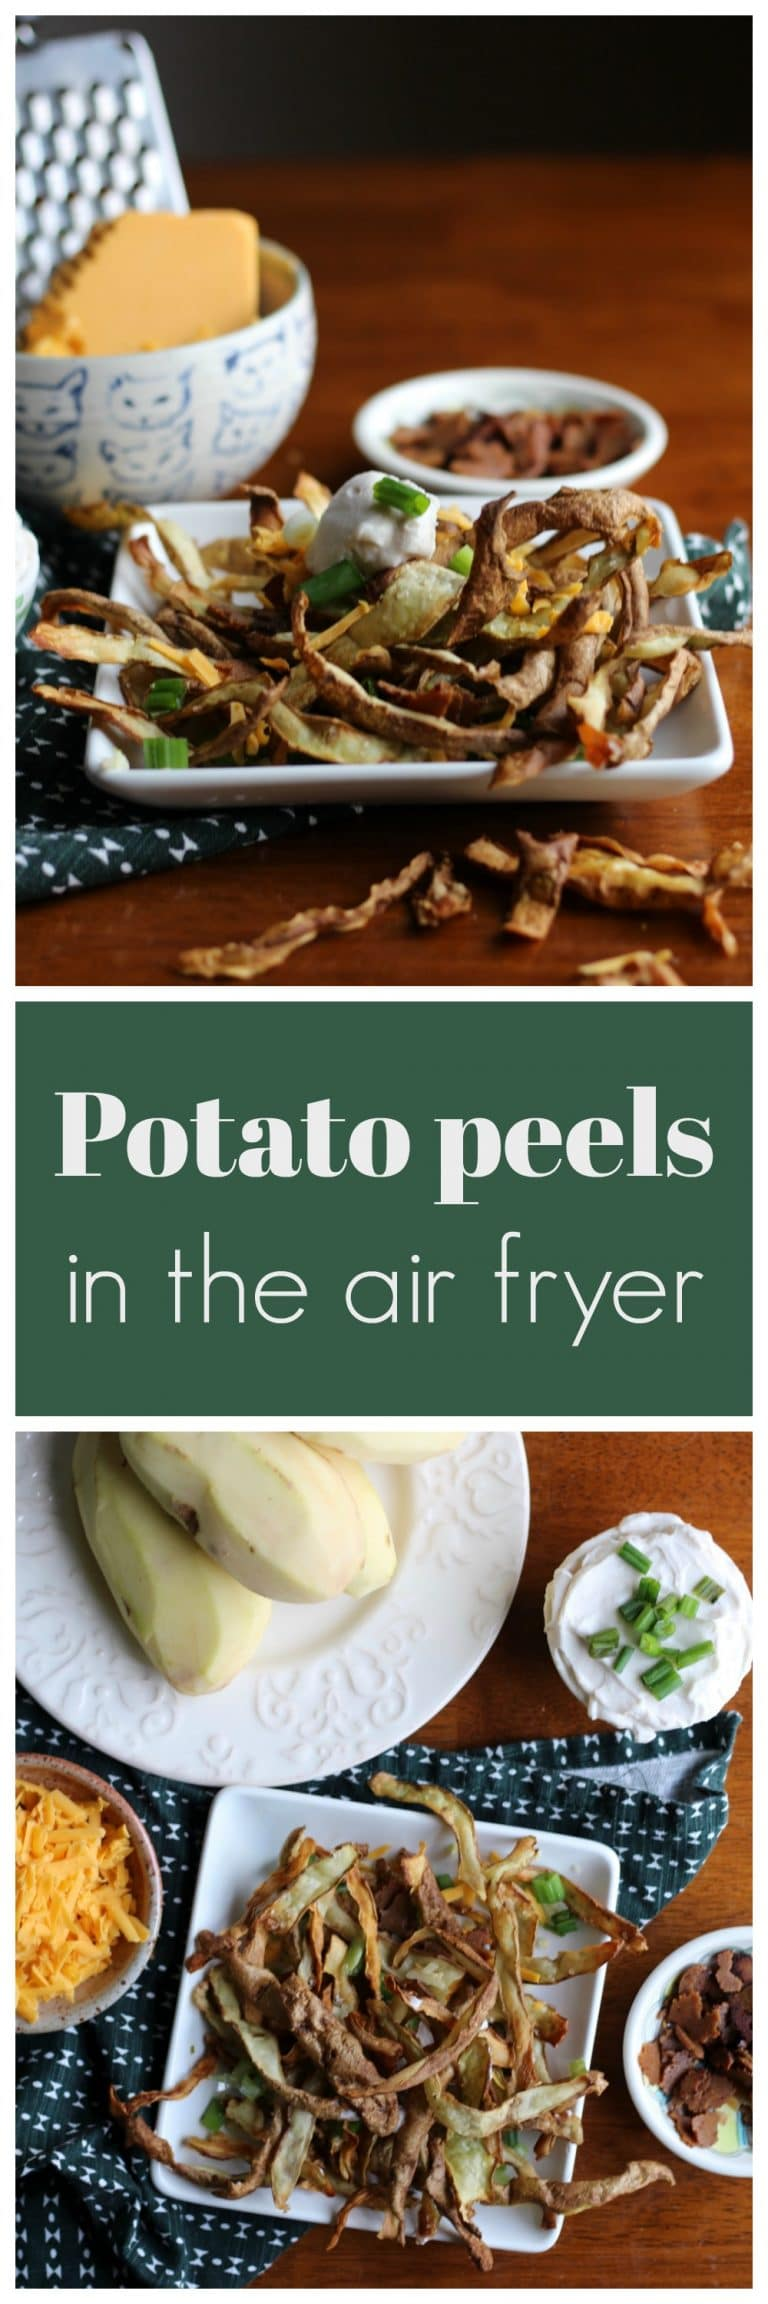 Don't let those potato peels go to waste! Air fry them instead for a hot and crispy snack. #vegan #glutenfree #airfryer